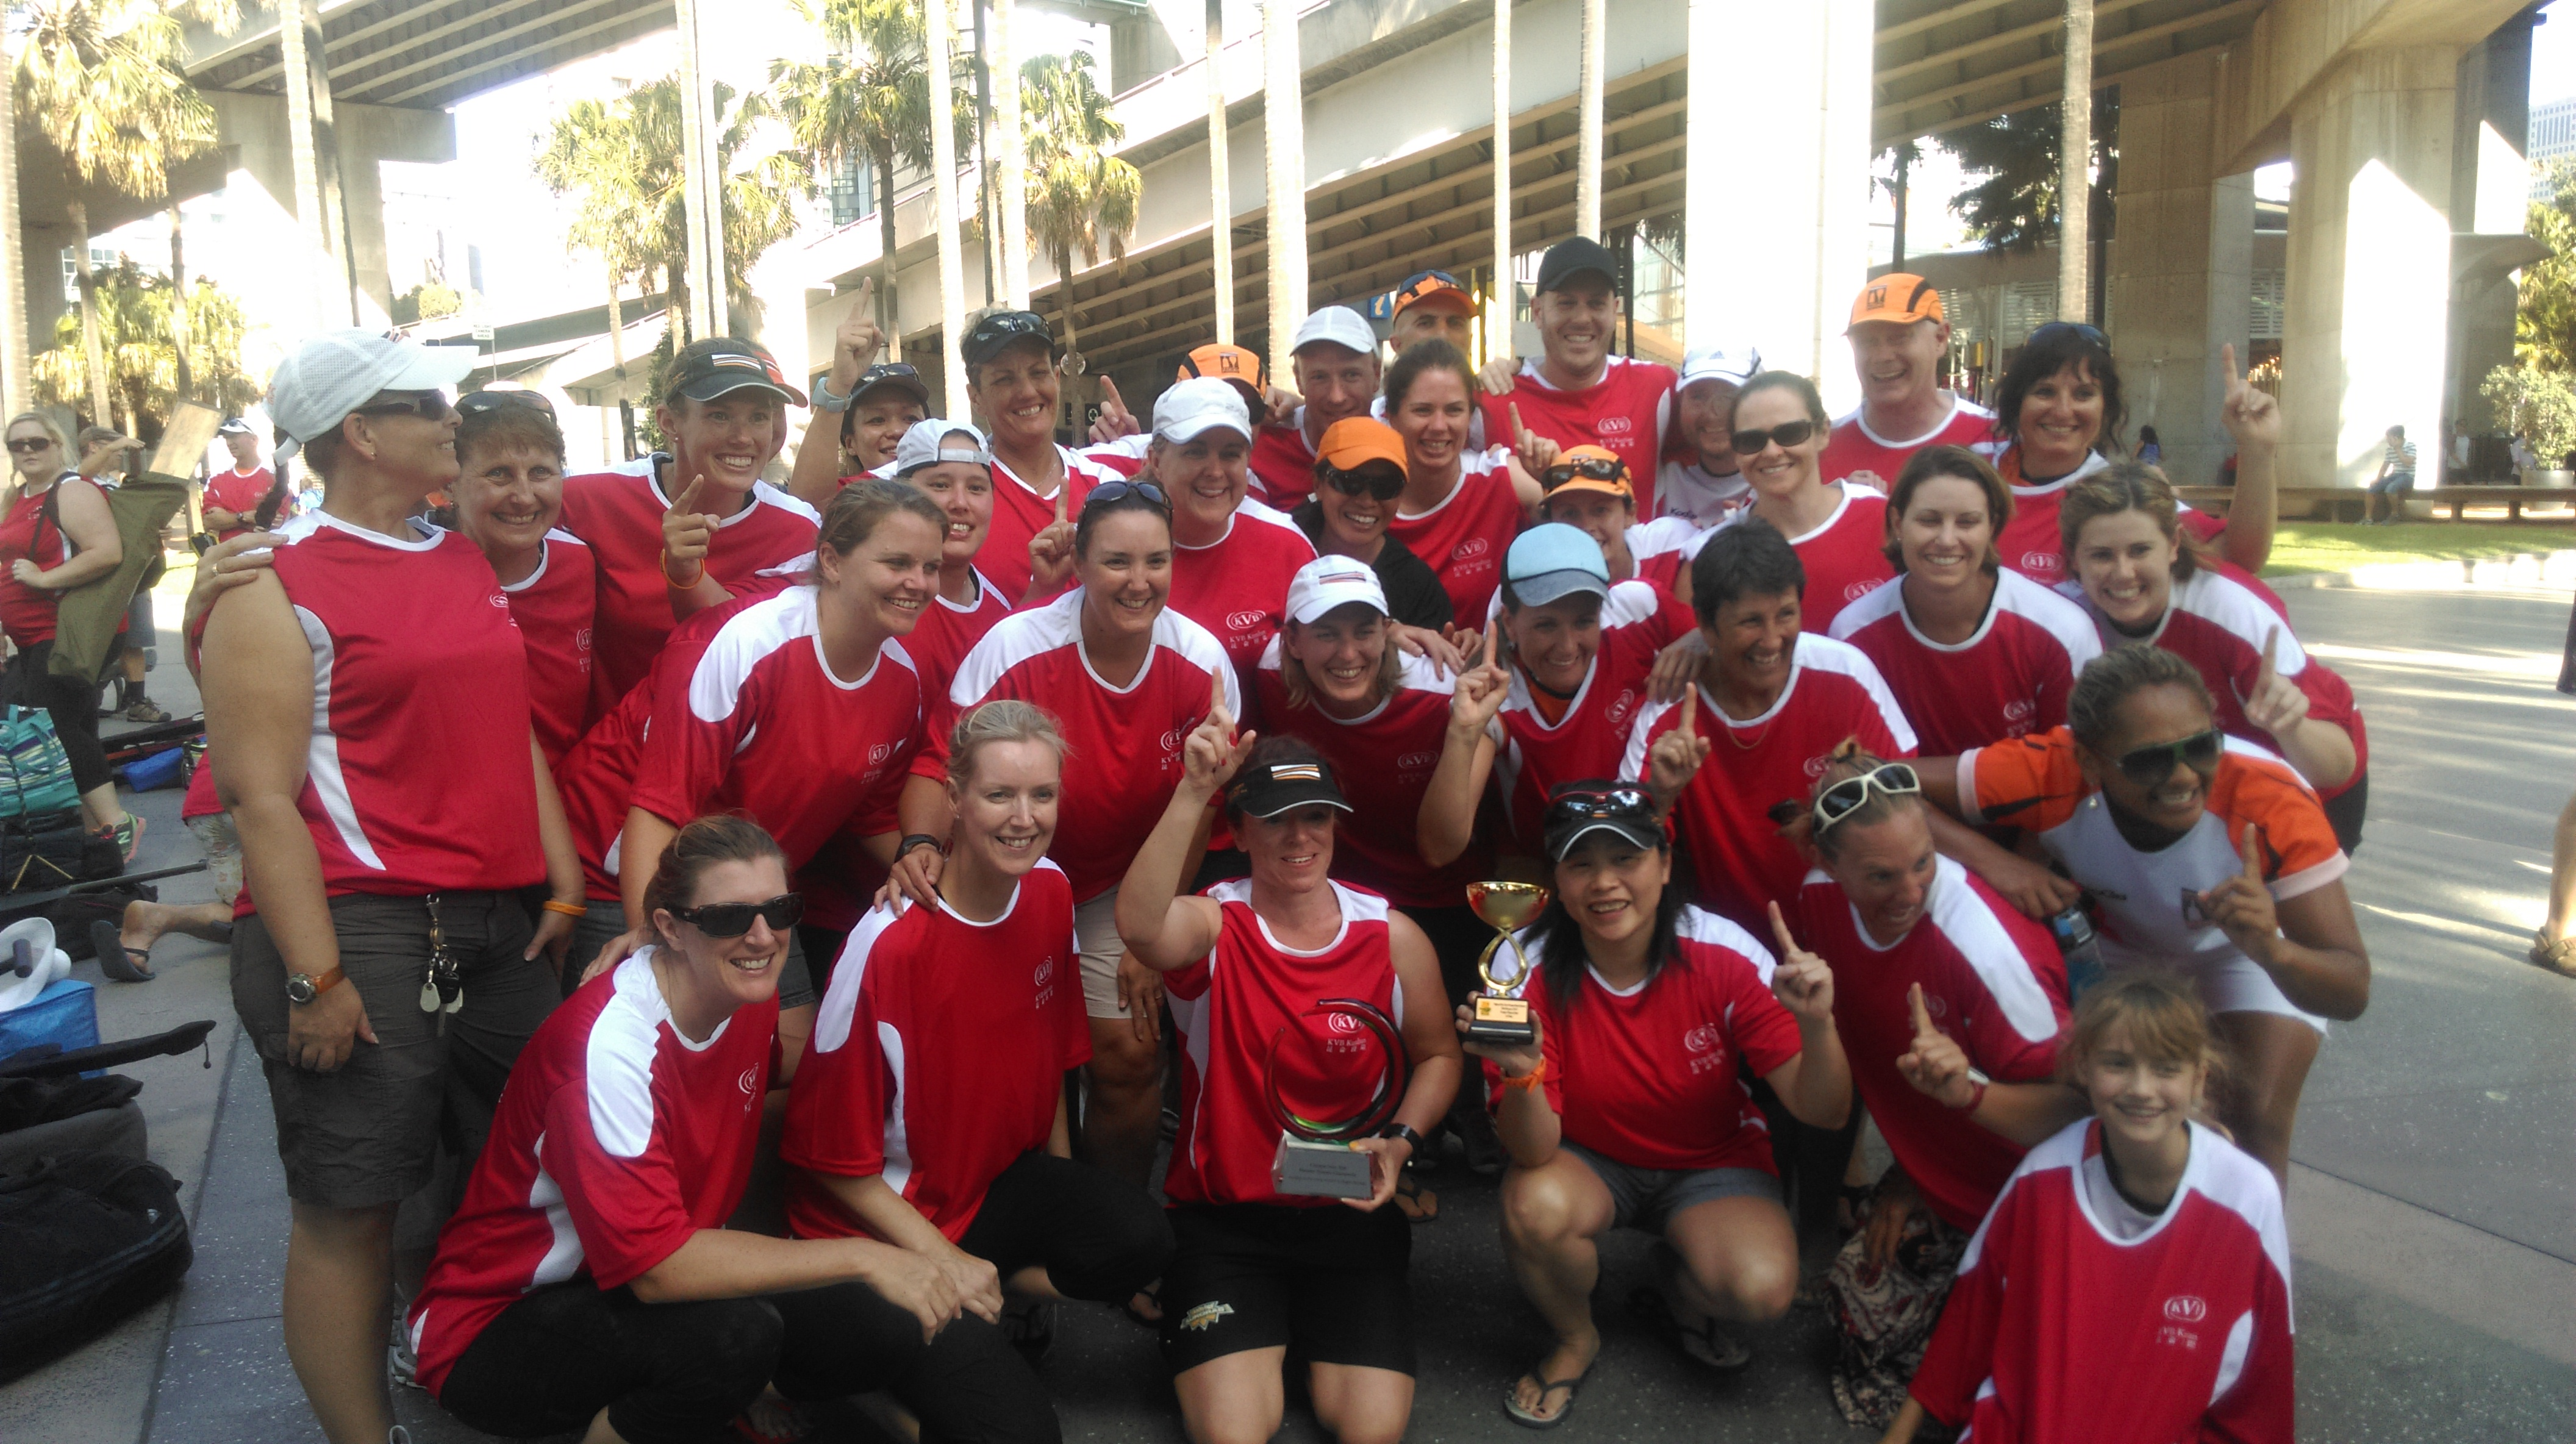 PDs Premier Women's crews winning for the 9th year in a row!